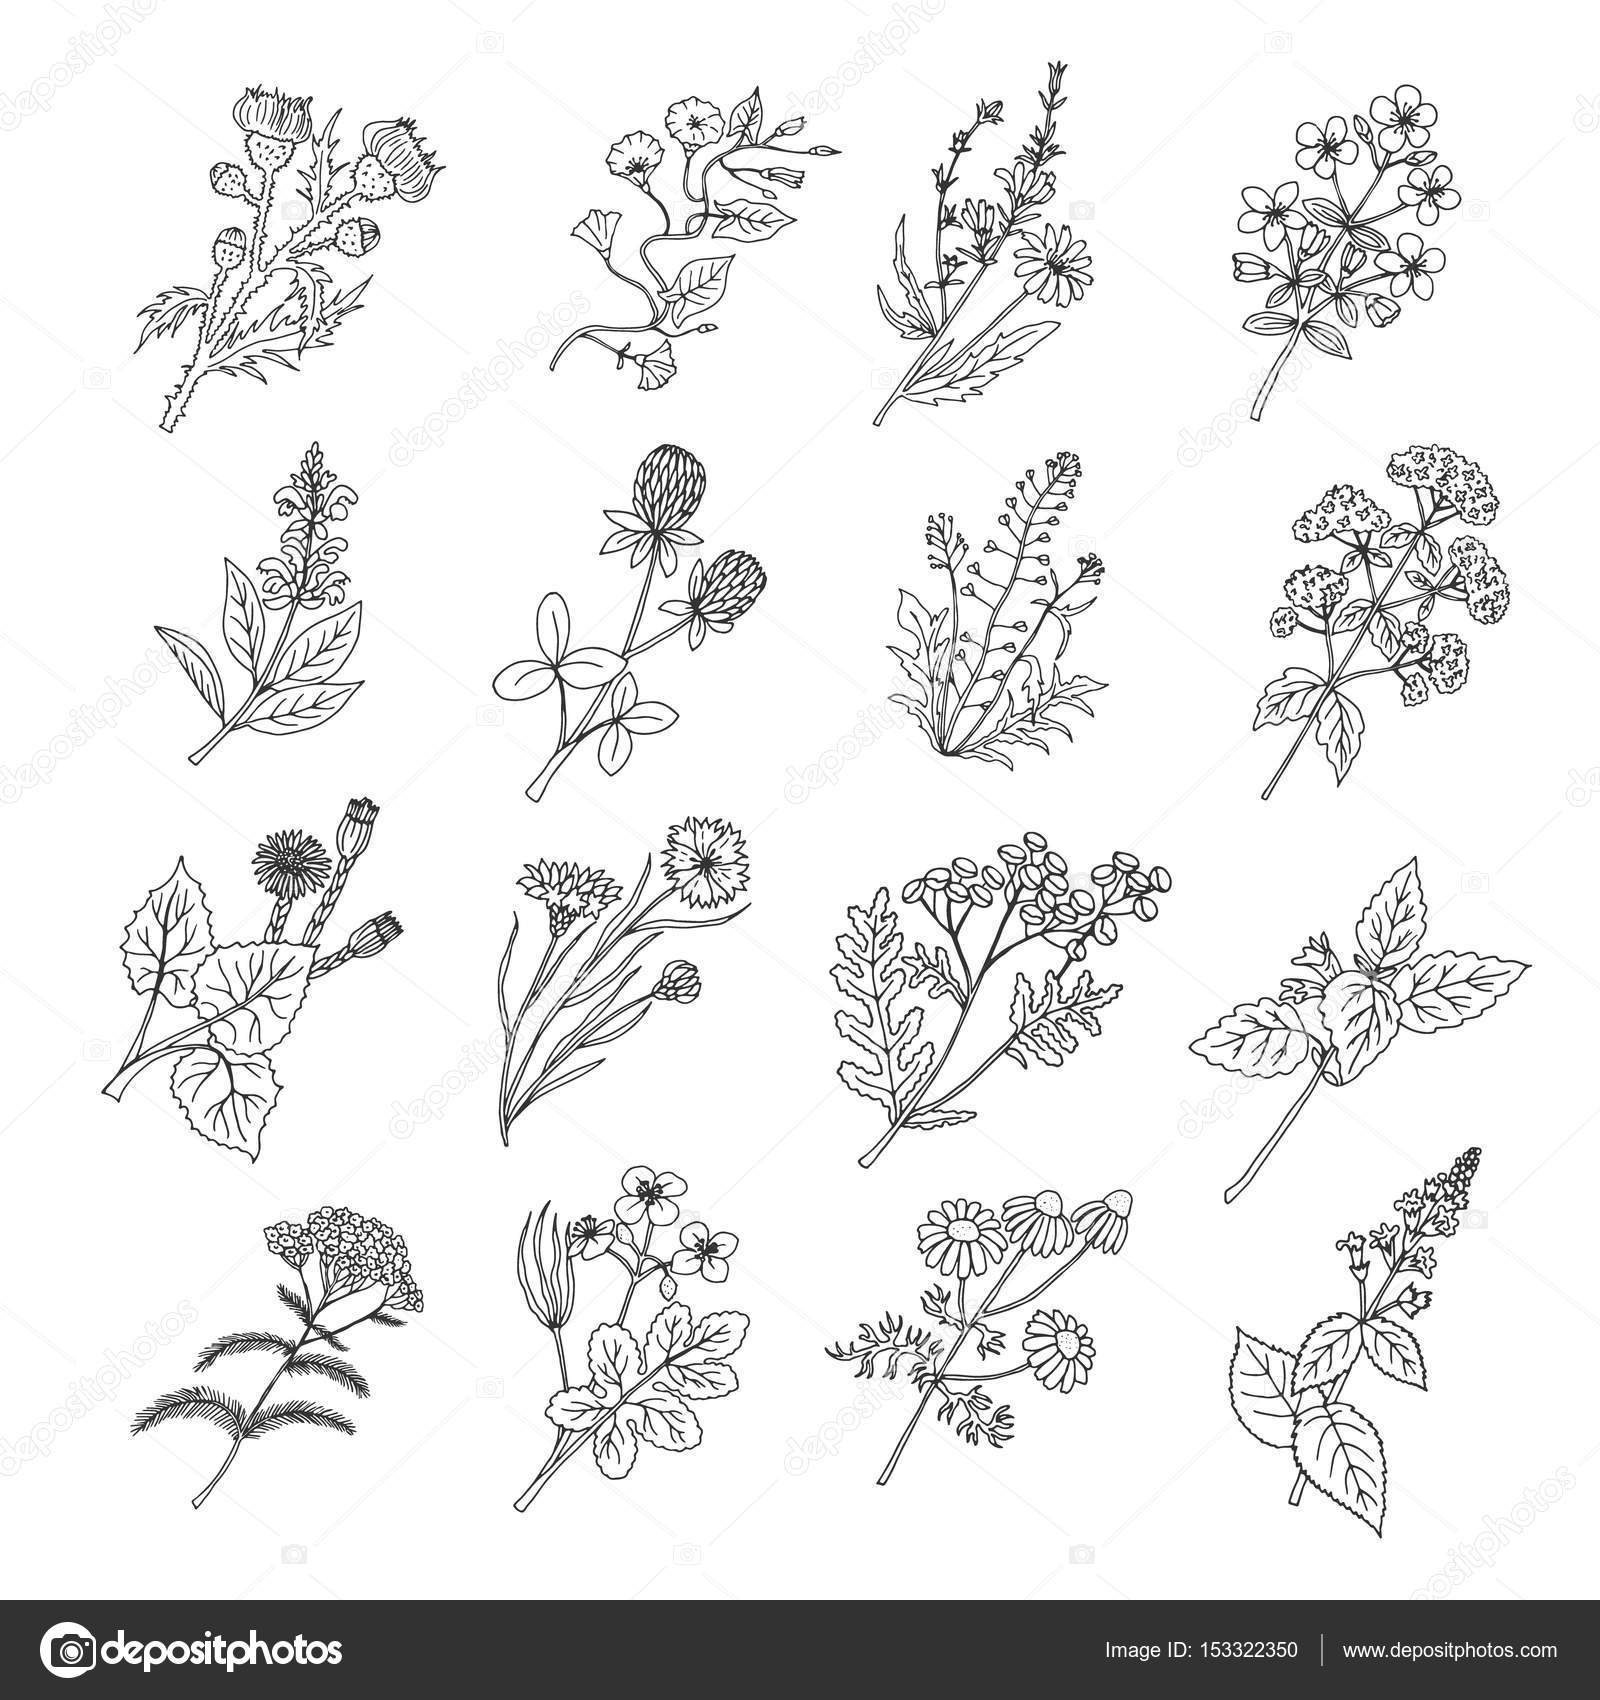 Botanical Sketch Drawings Vector Illustration Of Flowers